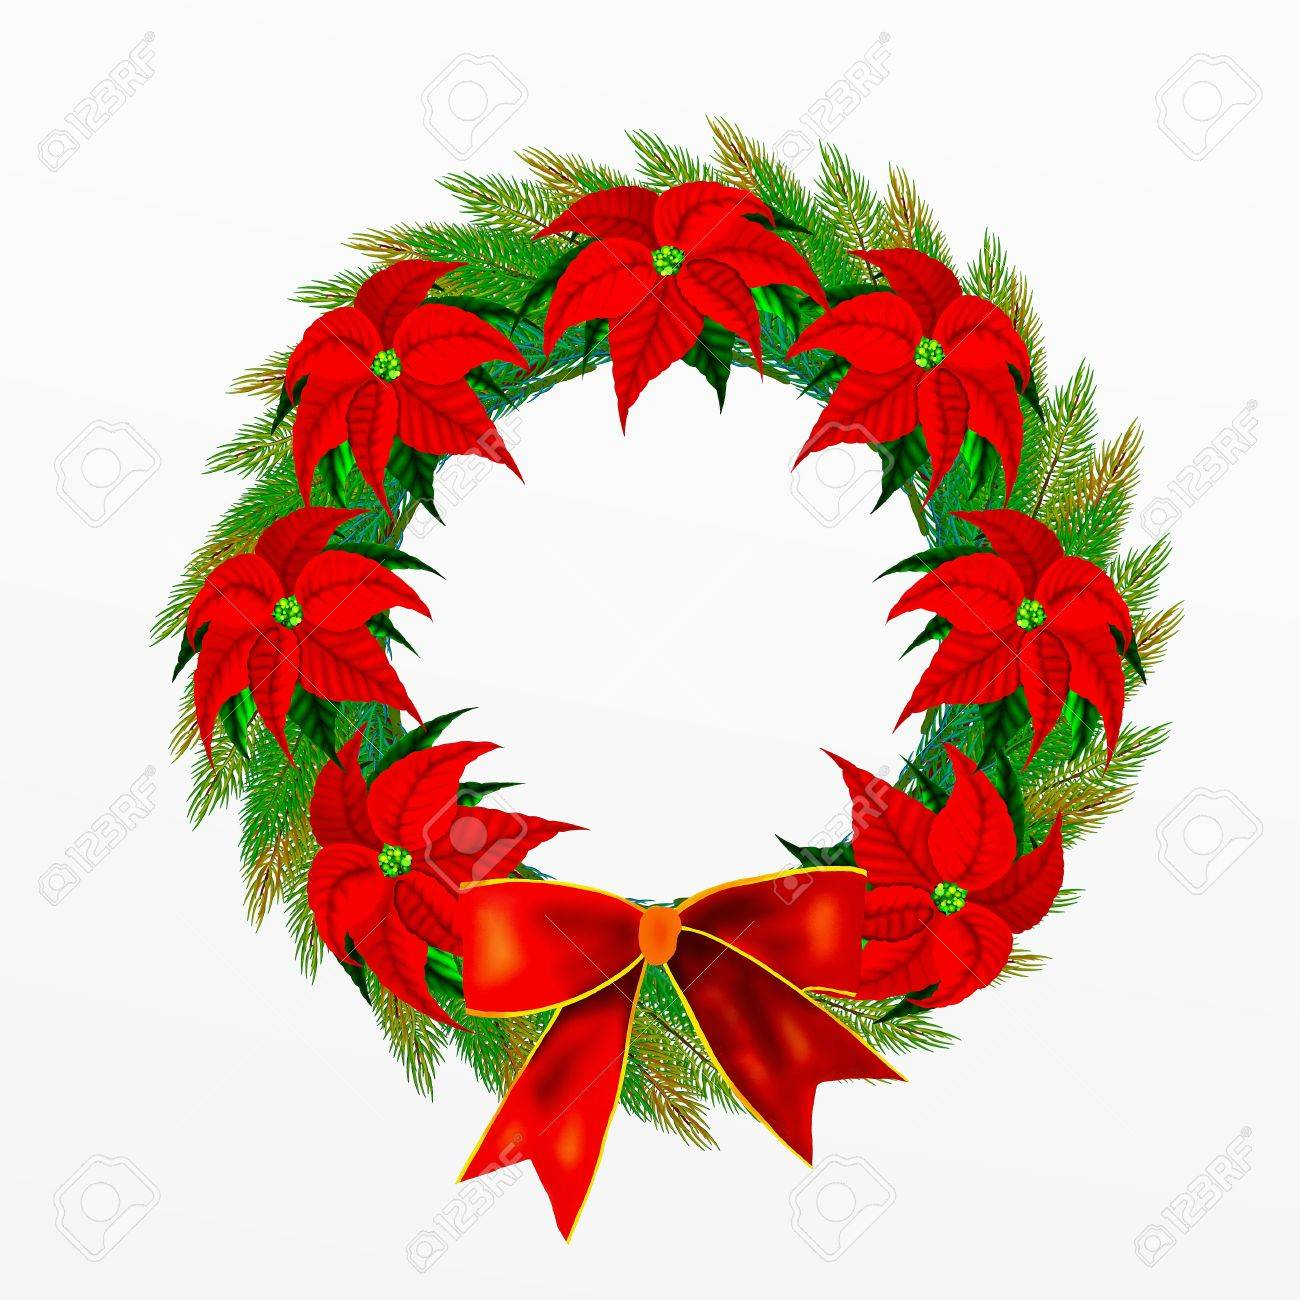 Christmas Wreath with Bow and Poinsettia Flowers Stock Photo - 14792308